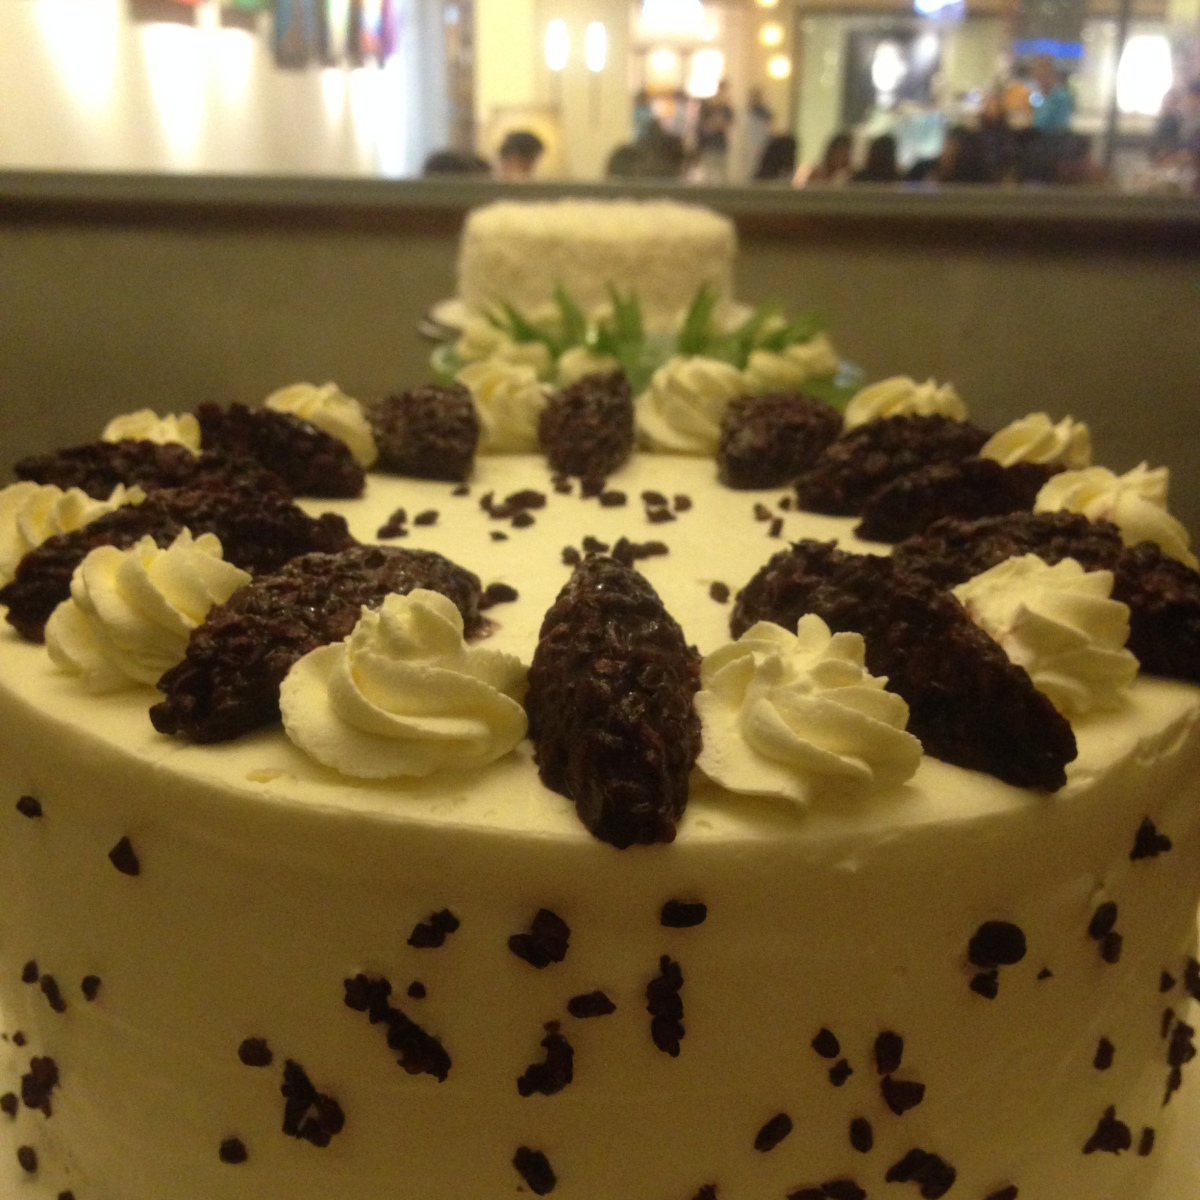 Cakes, Wonderful Cakes at Nutmeg Bangsar